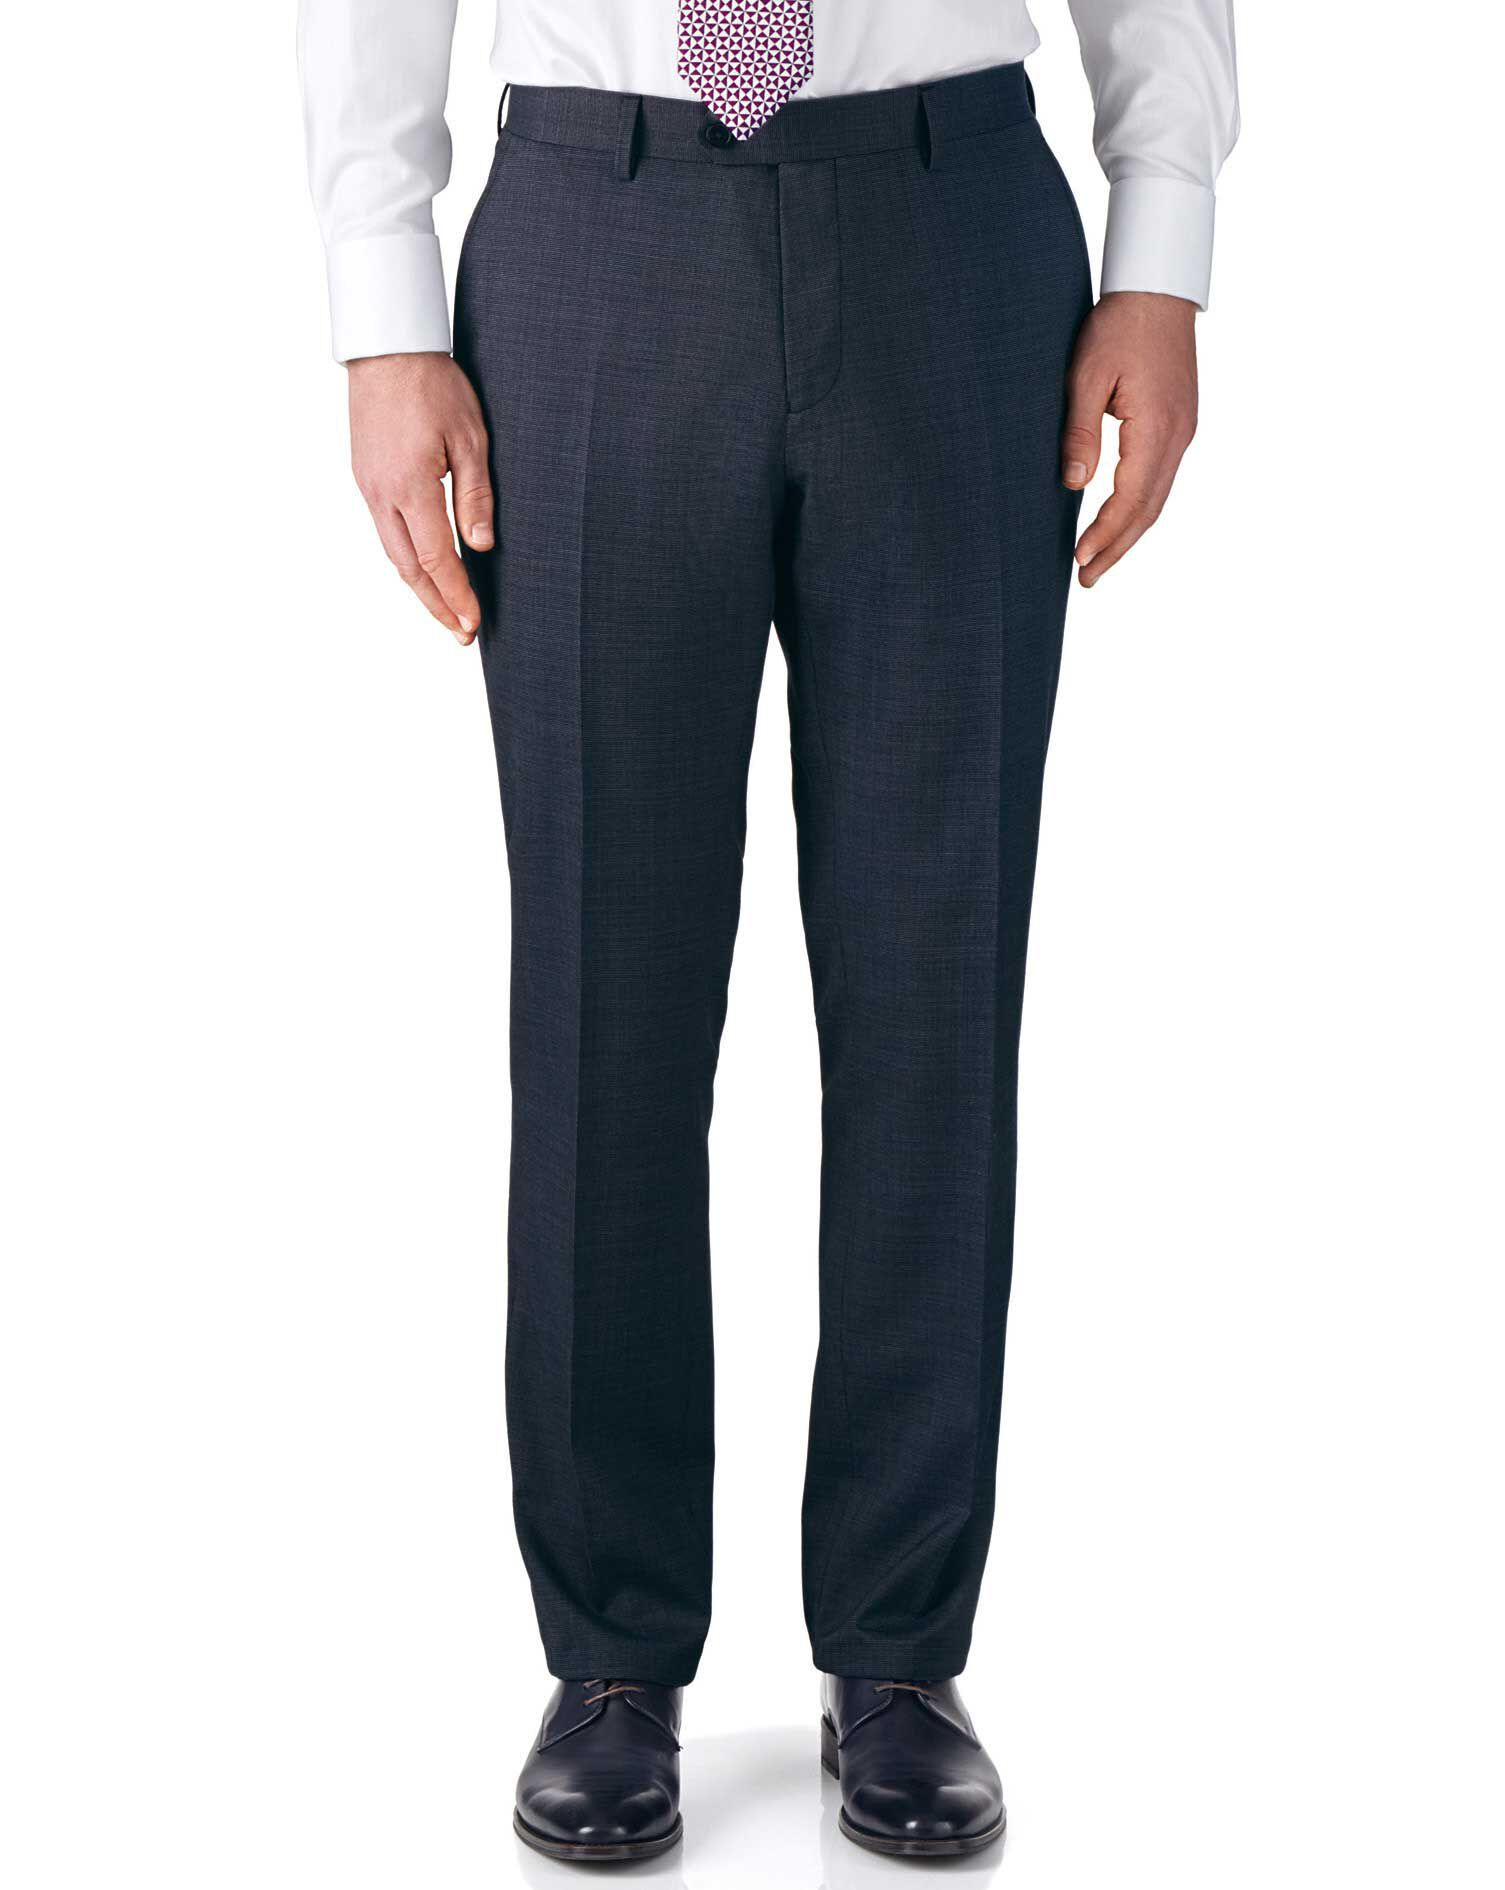 Airforce Blue Classic Fit End-On-End Business Suit Trousers Size W32 L34 by Charles Tyrwhitt